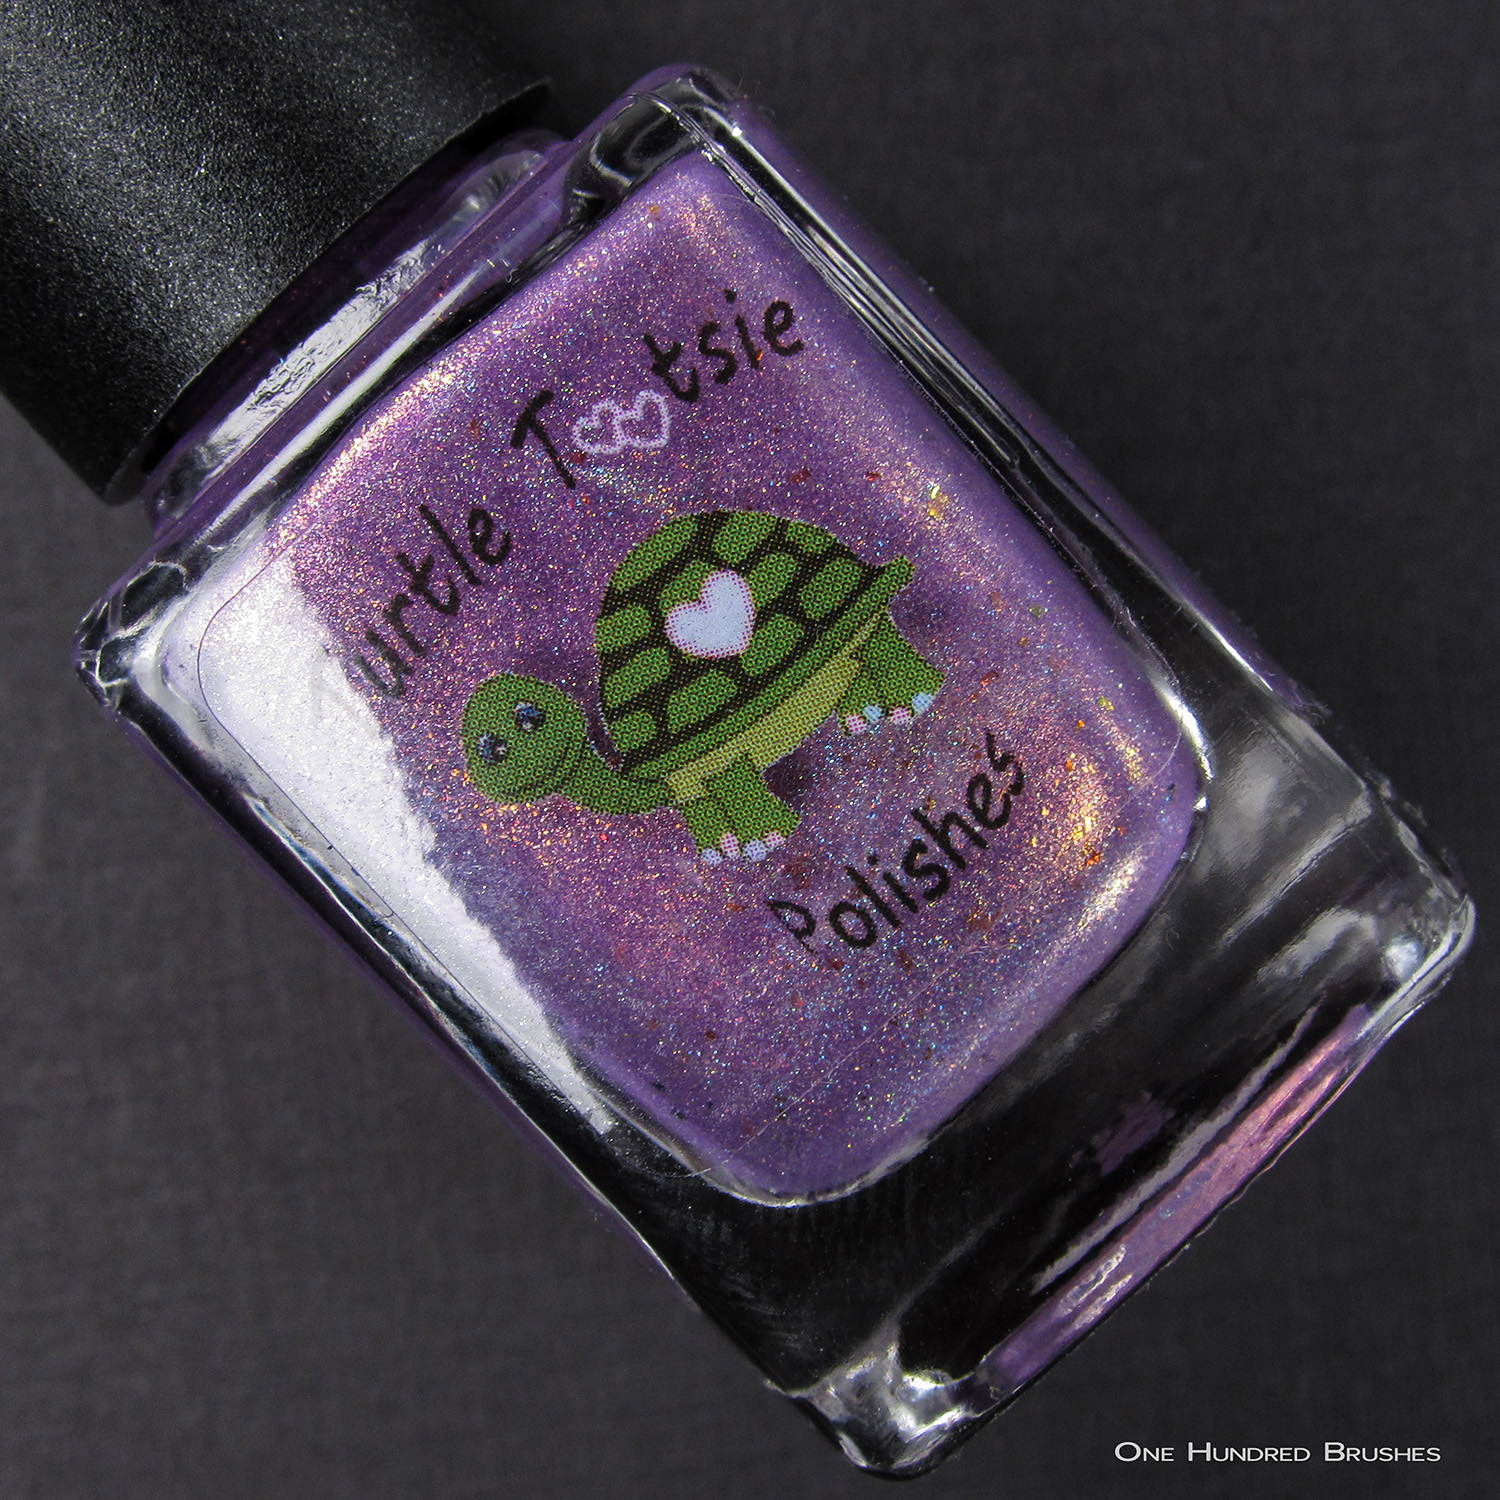 Bye Bye, Bikinis! - Turtle Tootsie Polishes - HHC Aug 2018